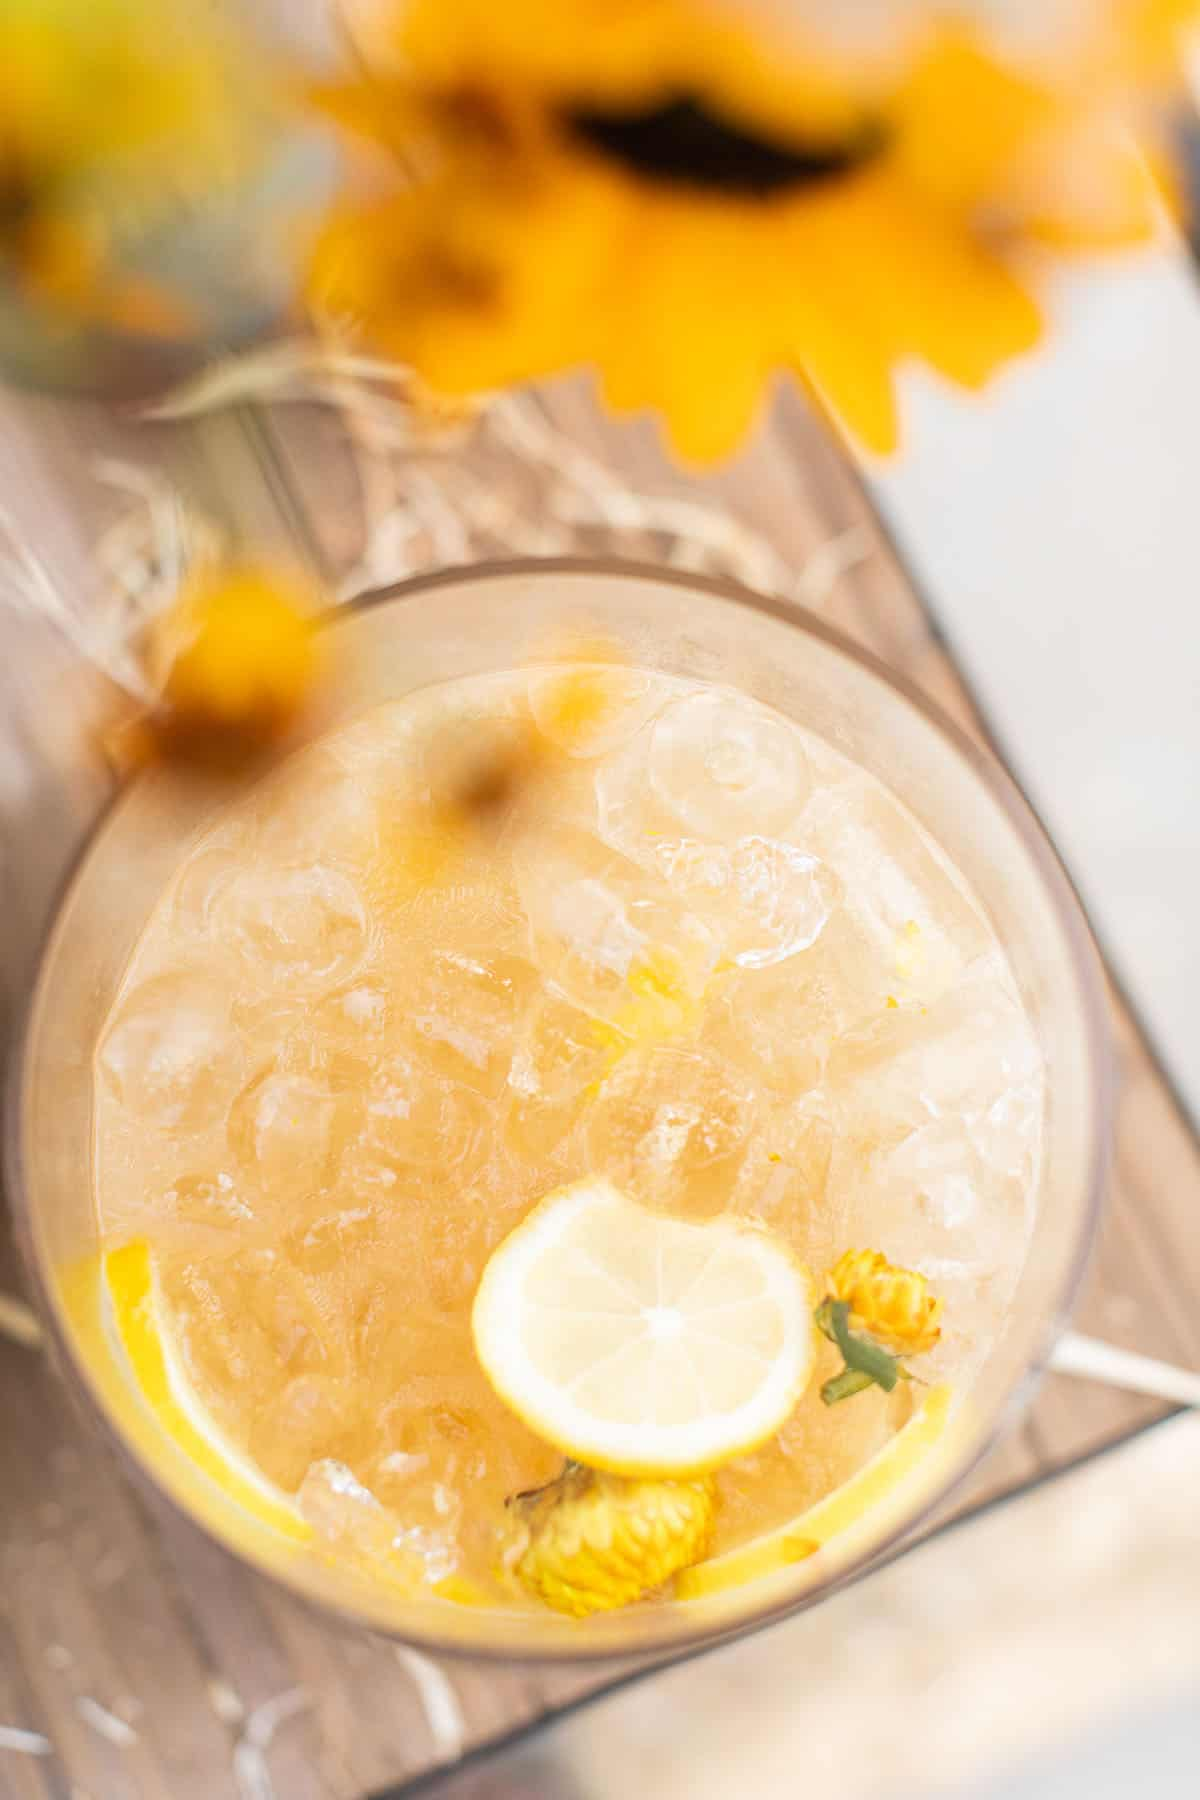 ginger whiskey punch with lemon juice and ginger